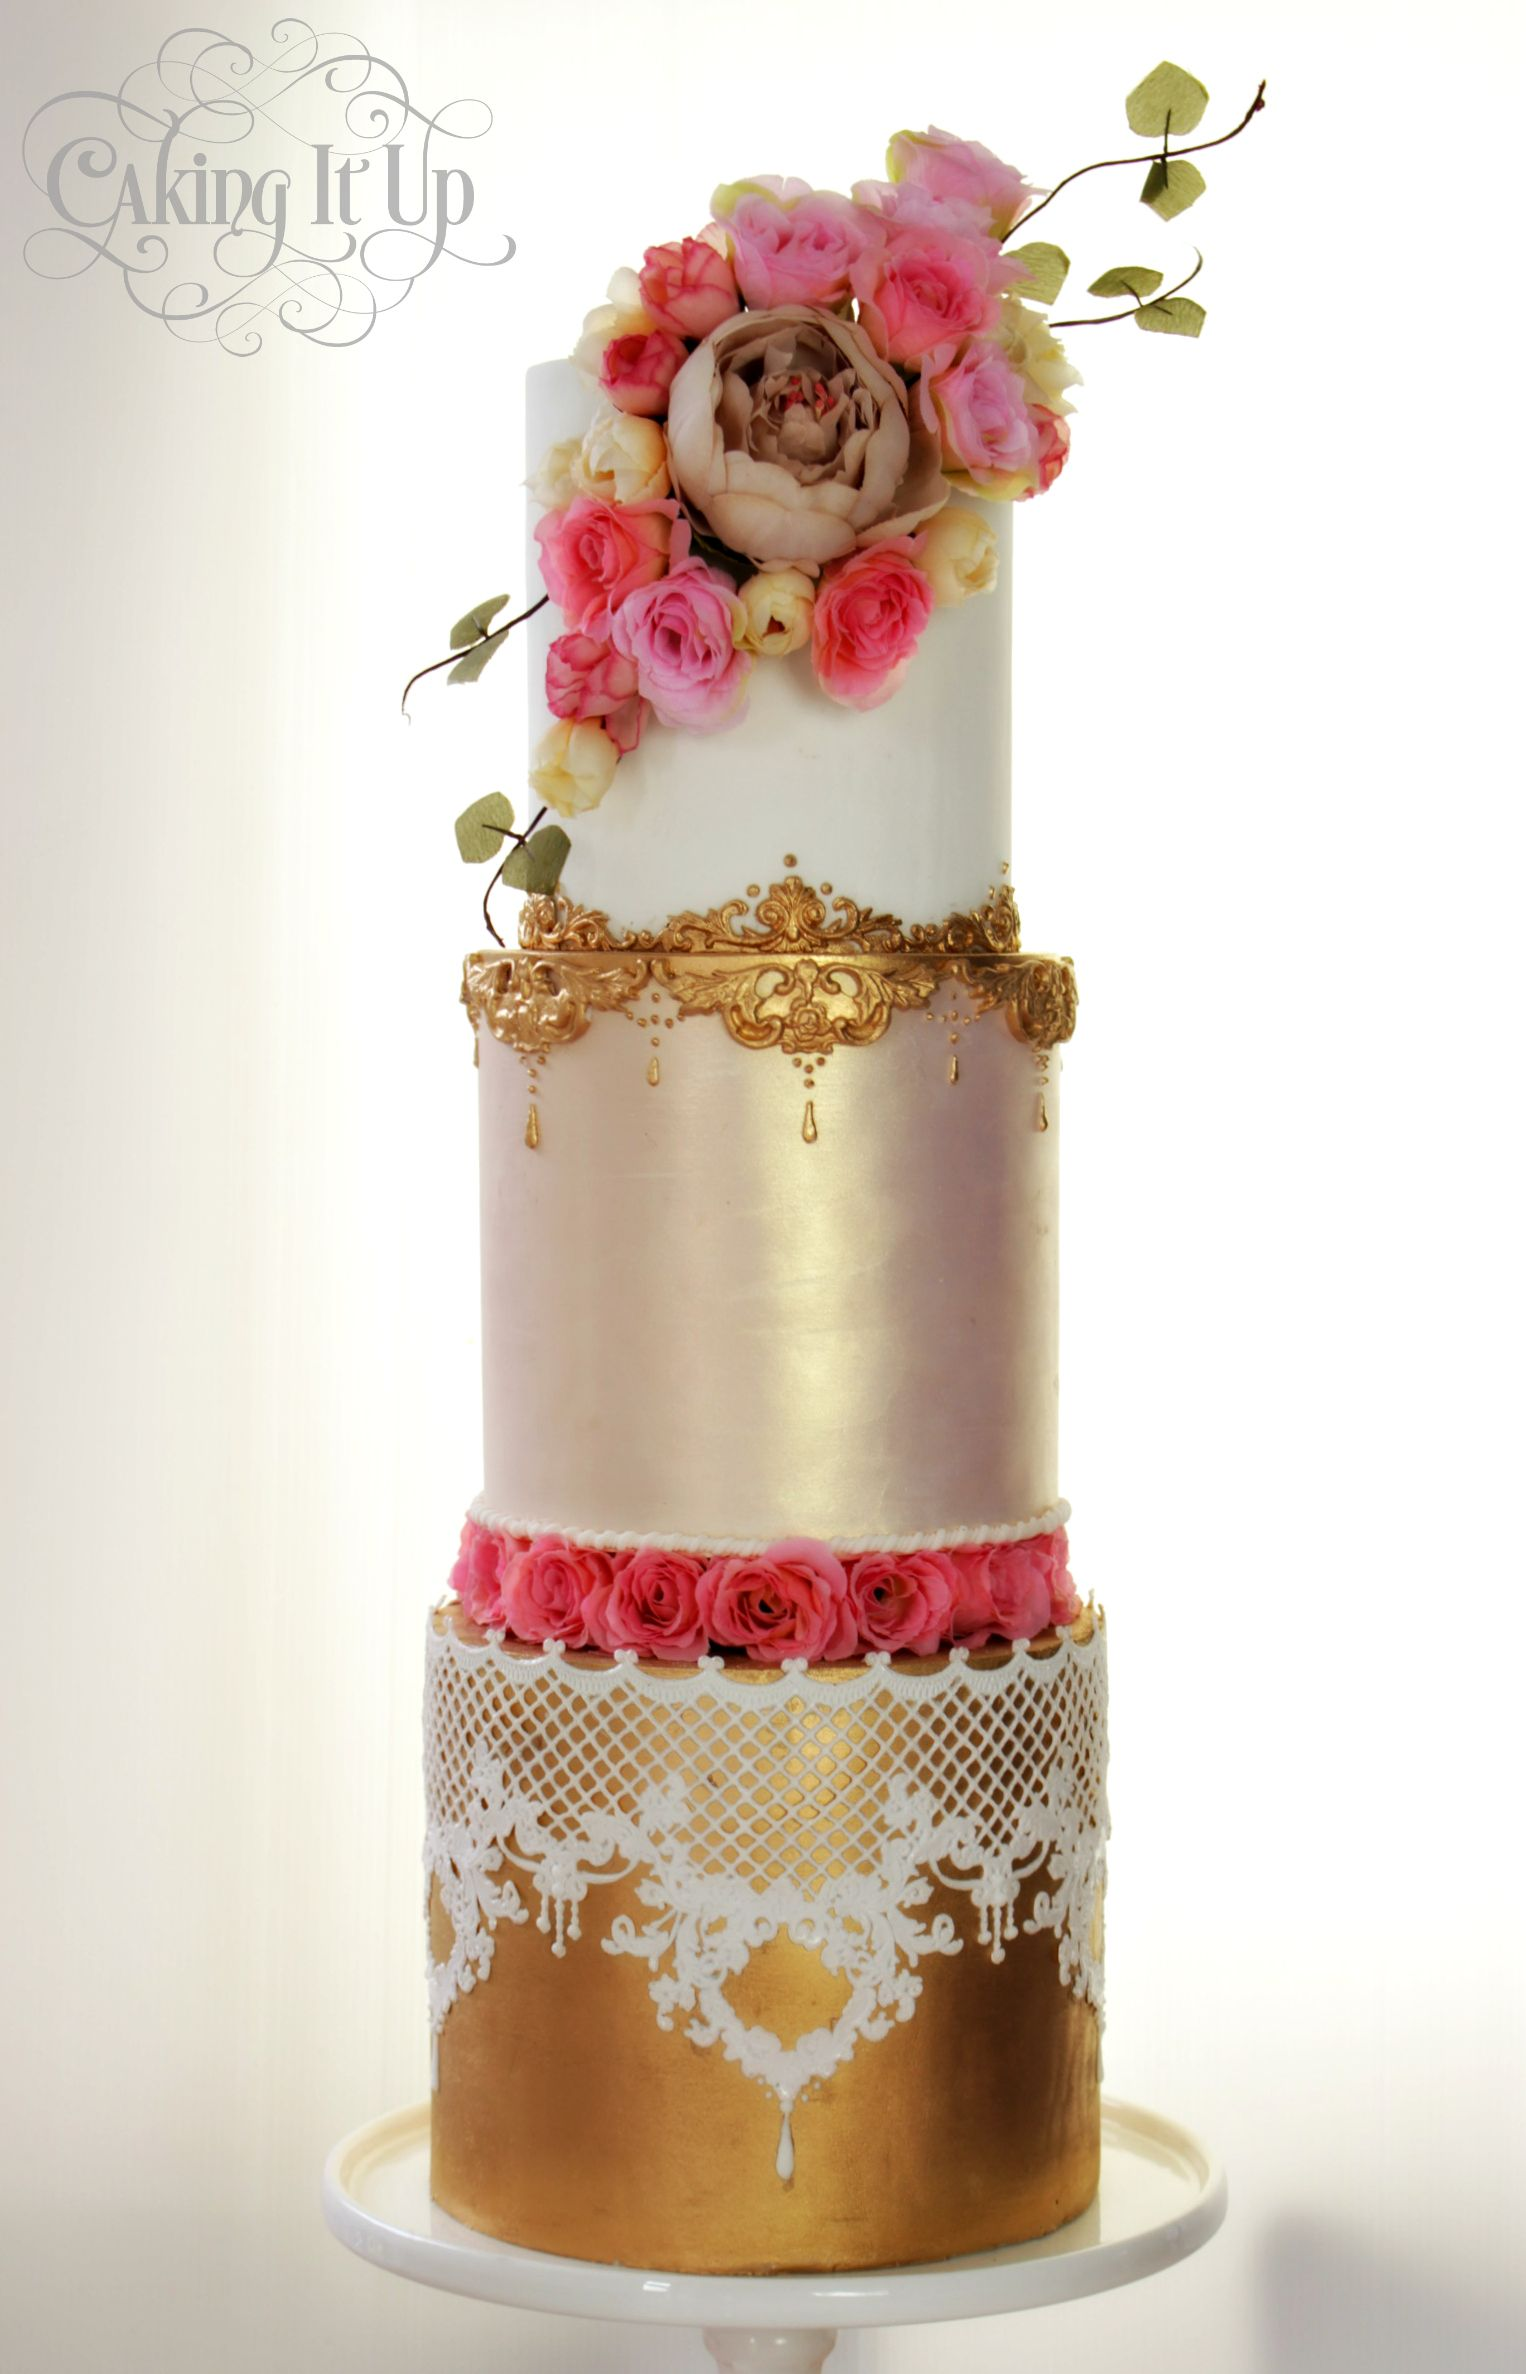 Pretty and elegant french high tea cake by Caking It Up